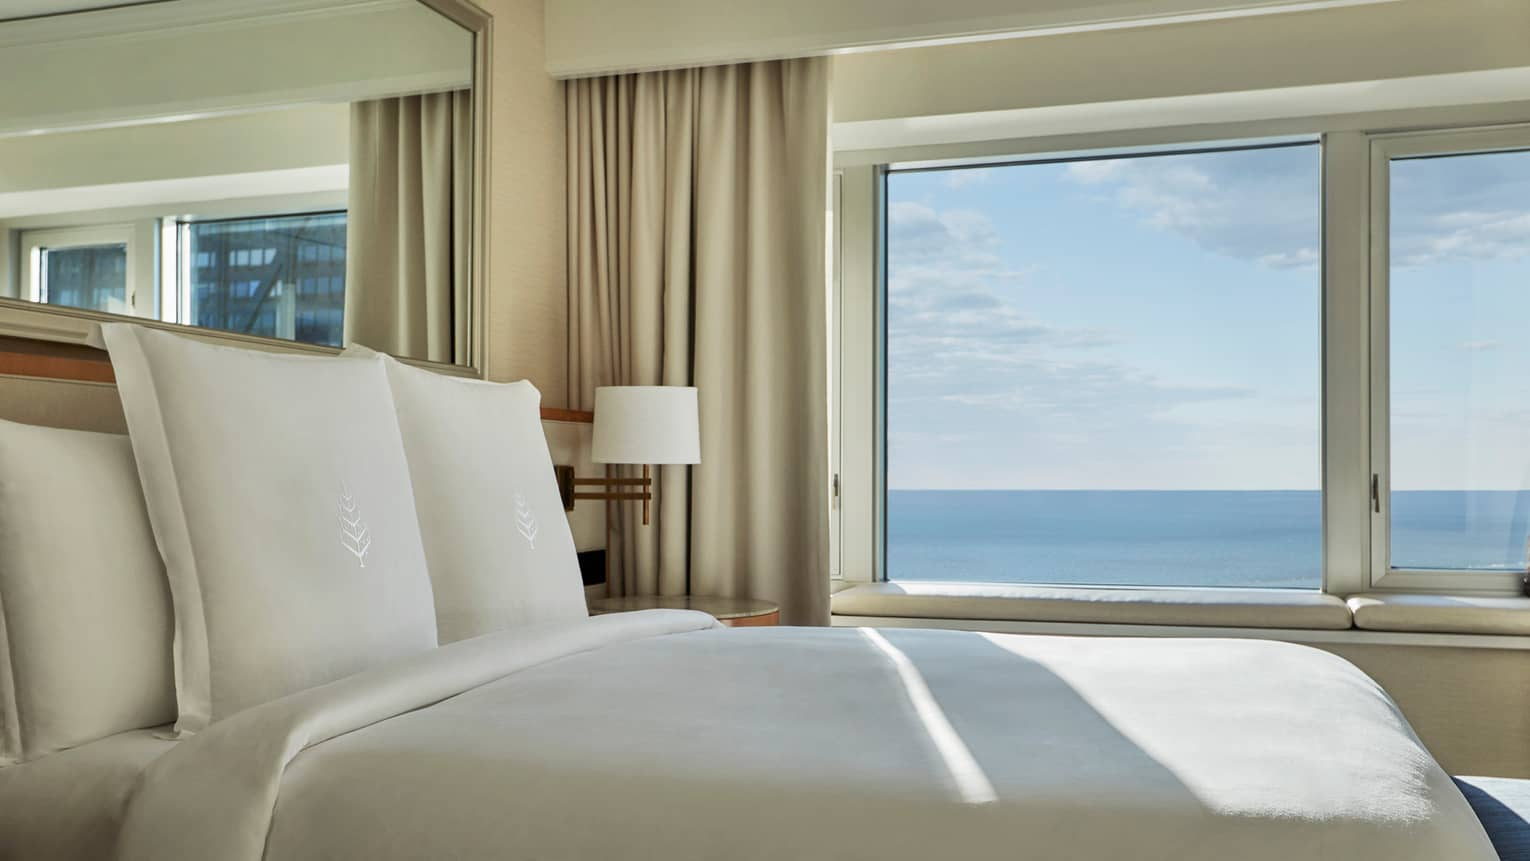 Close-up of hotel bed with white linens, Four Seasons logo by sunny window overlooking Lake Michigan